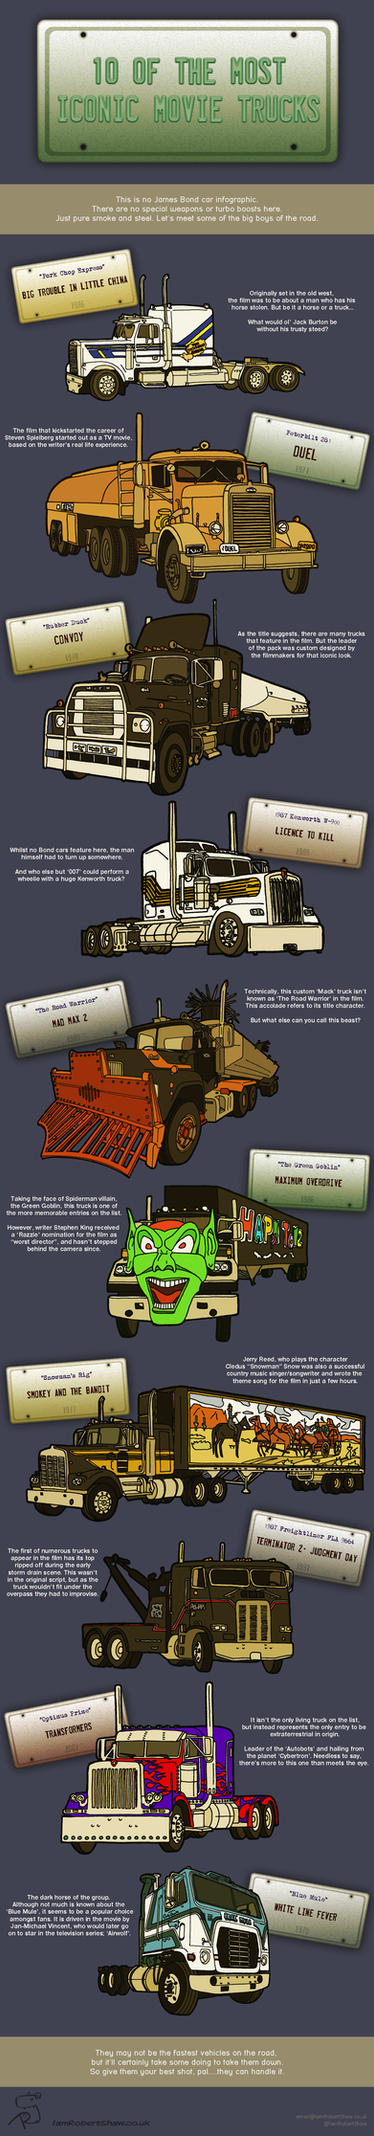 10 of the Most Iconic Movie Trucks by EggShen